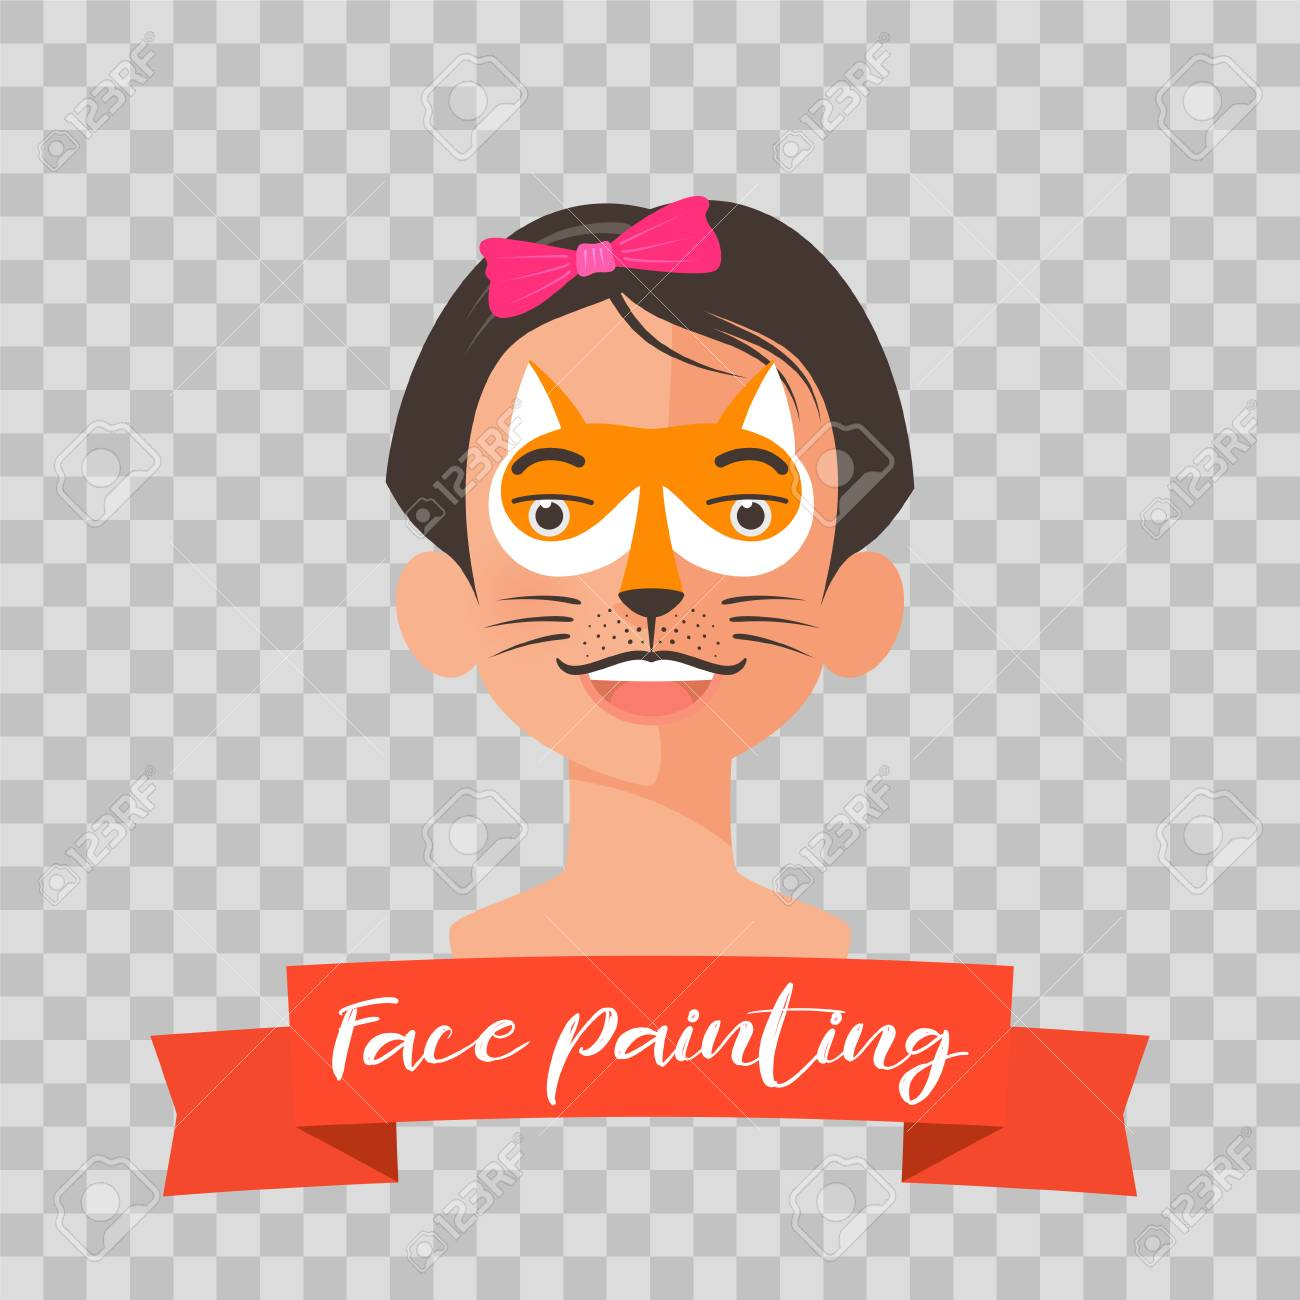 hight resolution of kid with fox face painting vector illustrations on transparent background child face with animal makeup